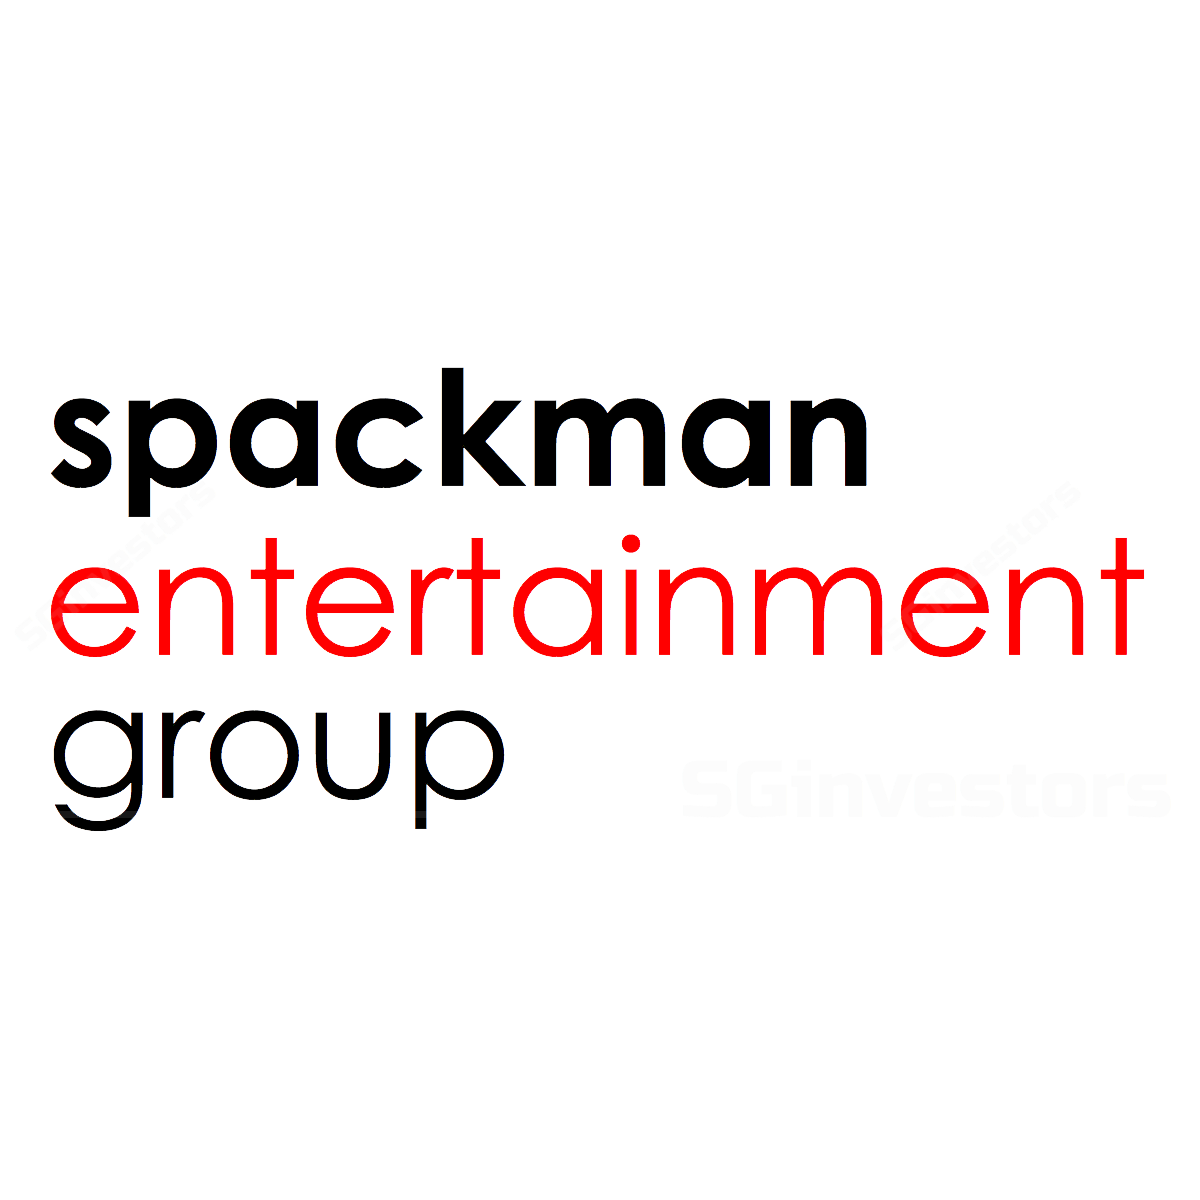 Spackman Entertainment - RHB Invest 2018-05-16: Still Upbeat On A 2h18f Turnaround